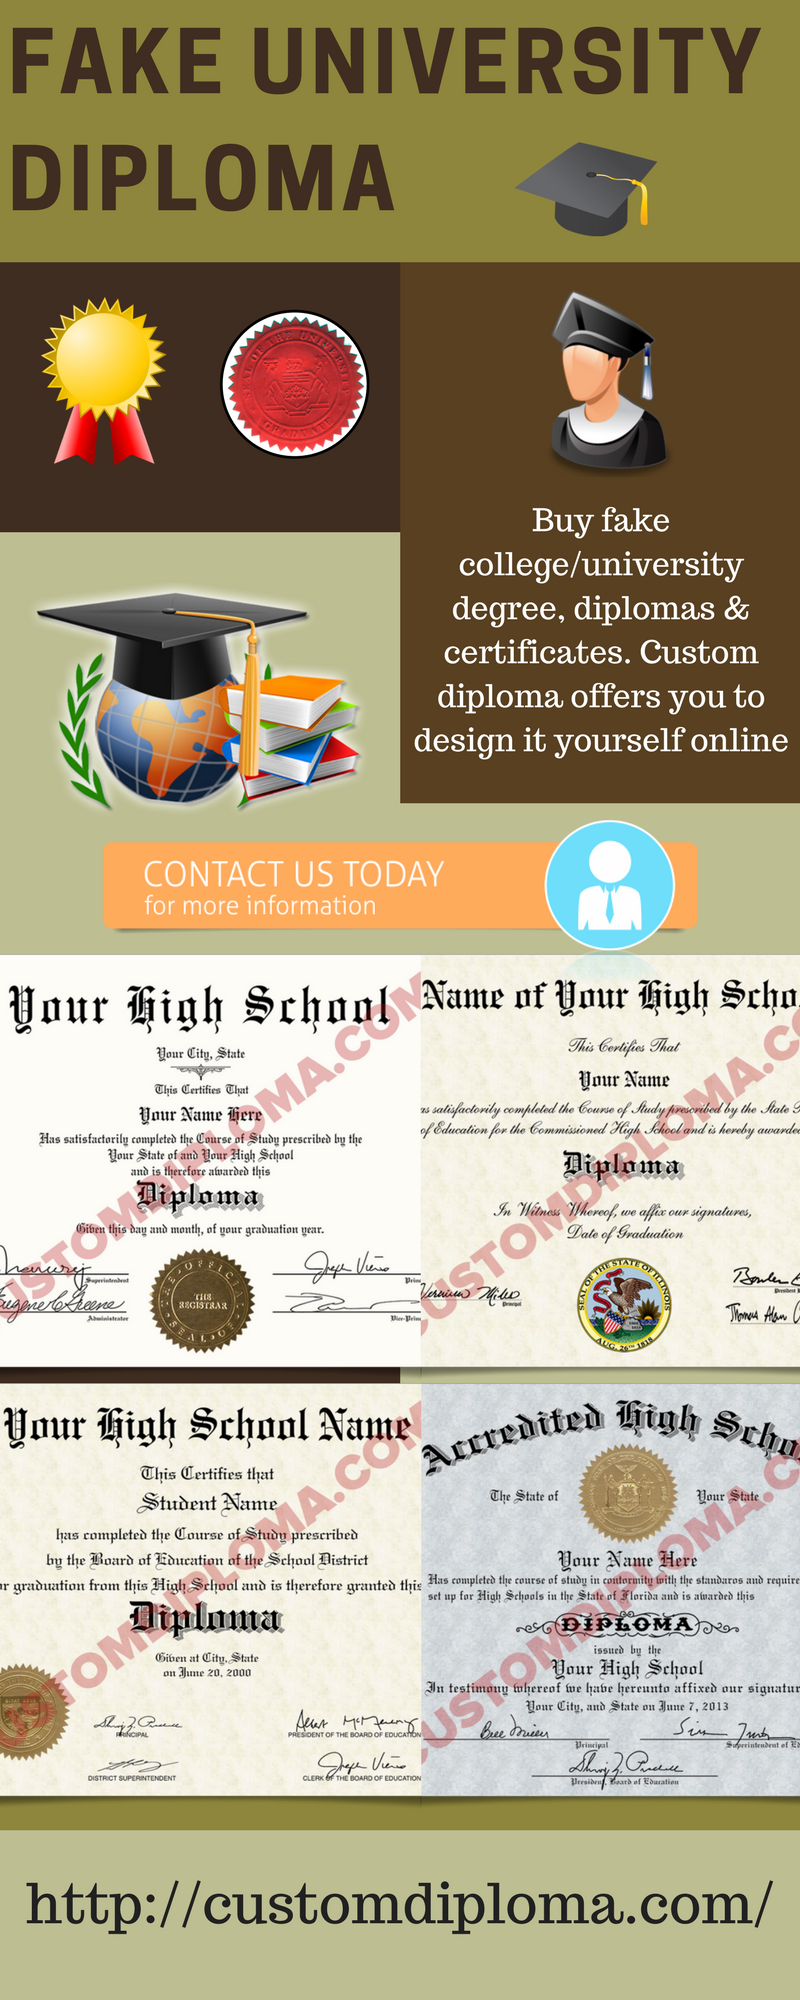 Buy fake college/university degree, diplomas & certificates. Custom diploma  offers you to design it yourself online and order printed version at $69  only.